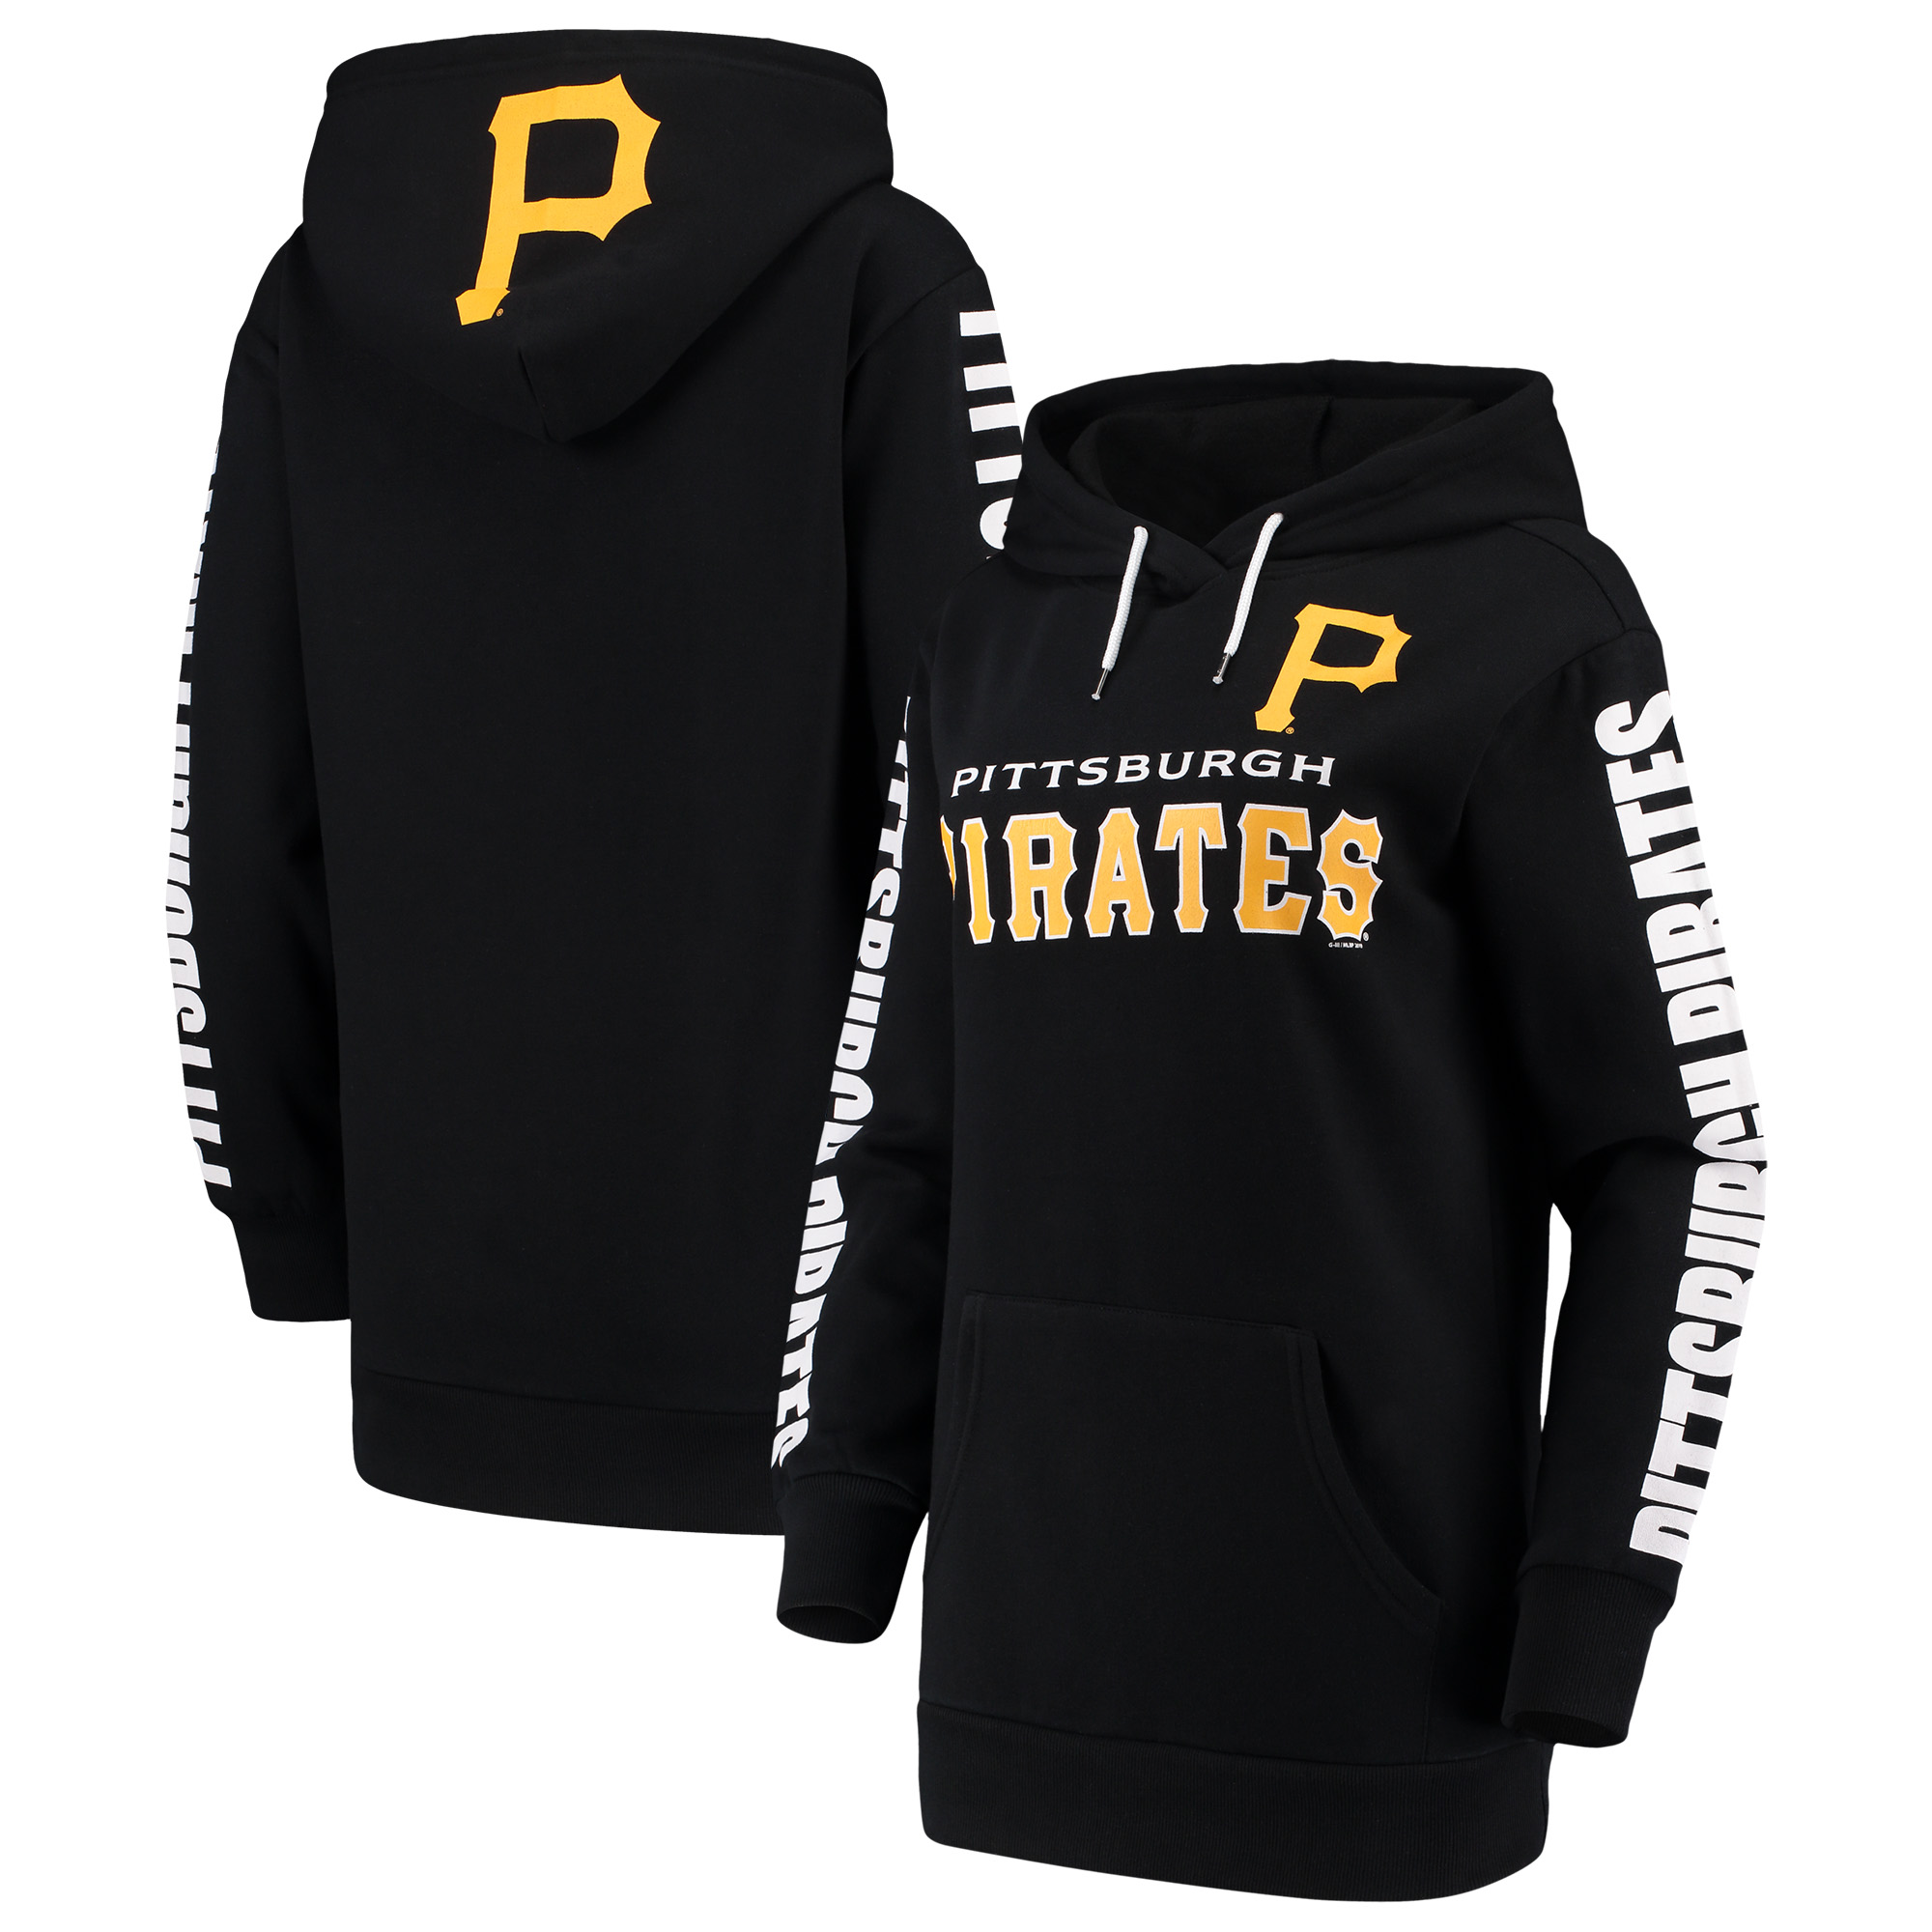 Pittsburgh Pirates G-III 4Her by Carl Banks Women's Extra Innings Pullover Hoodie - Black